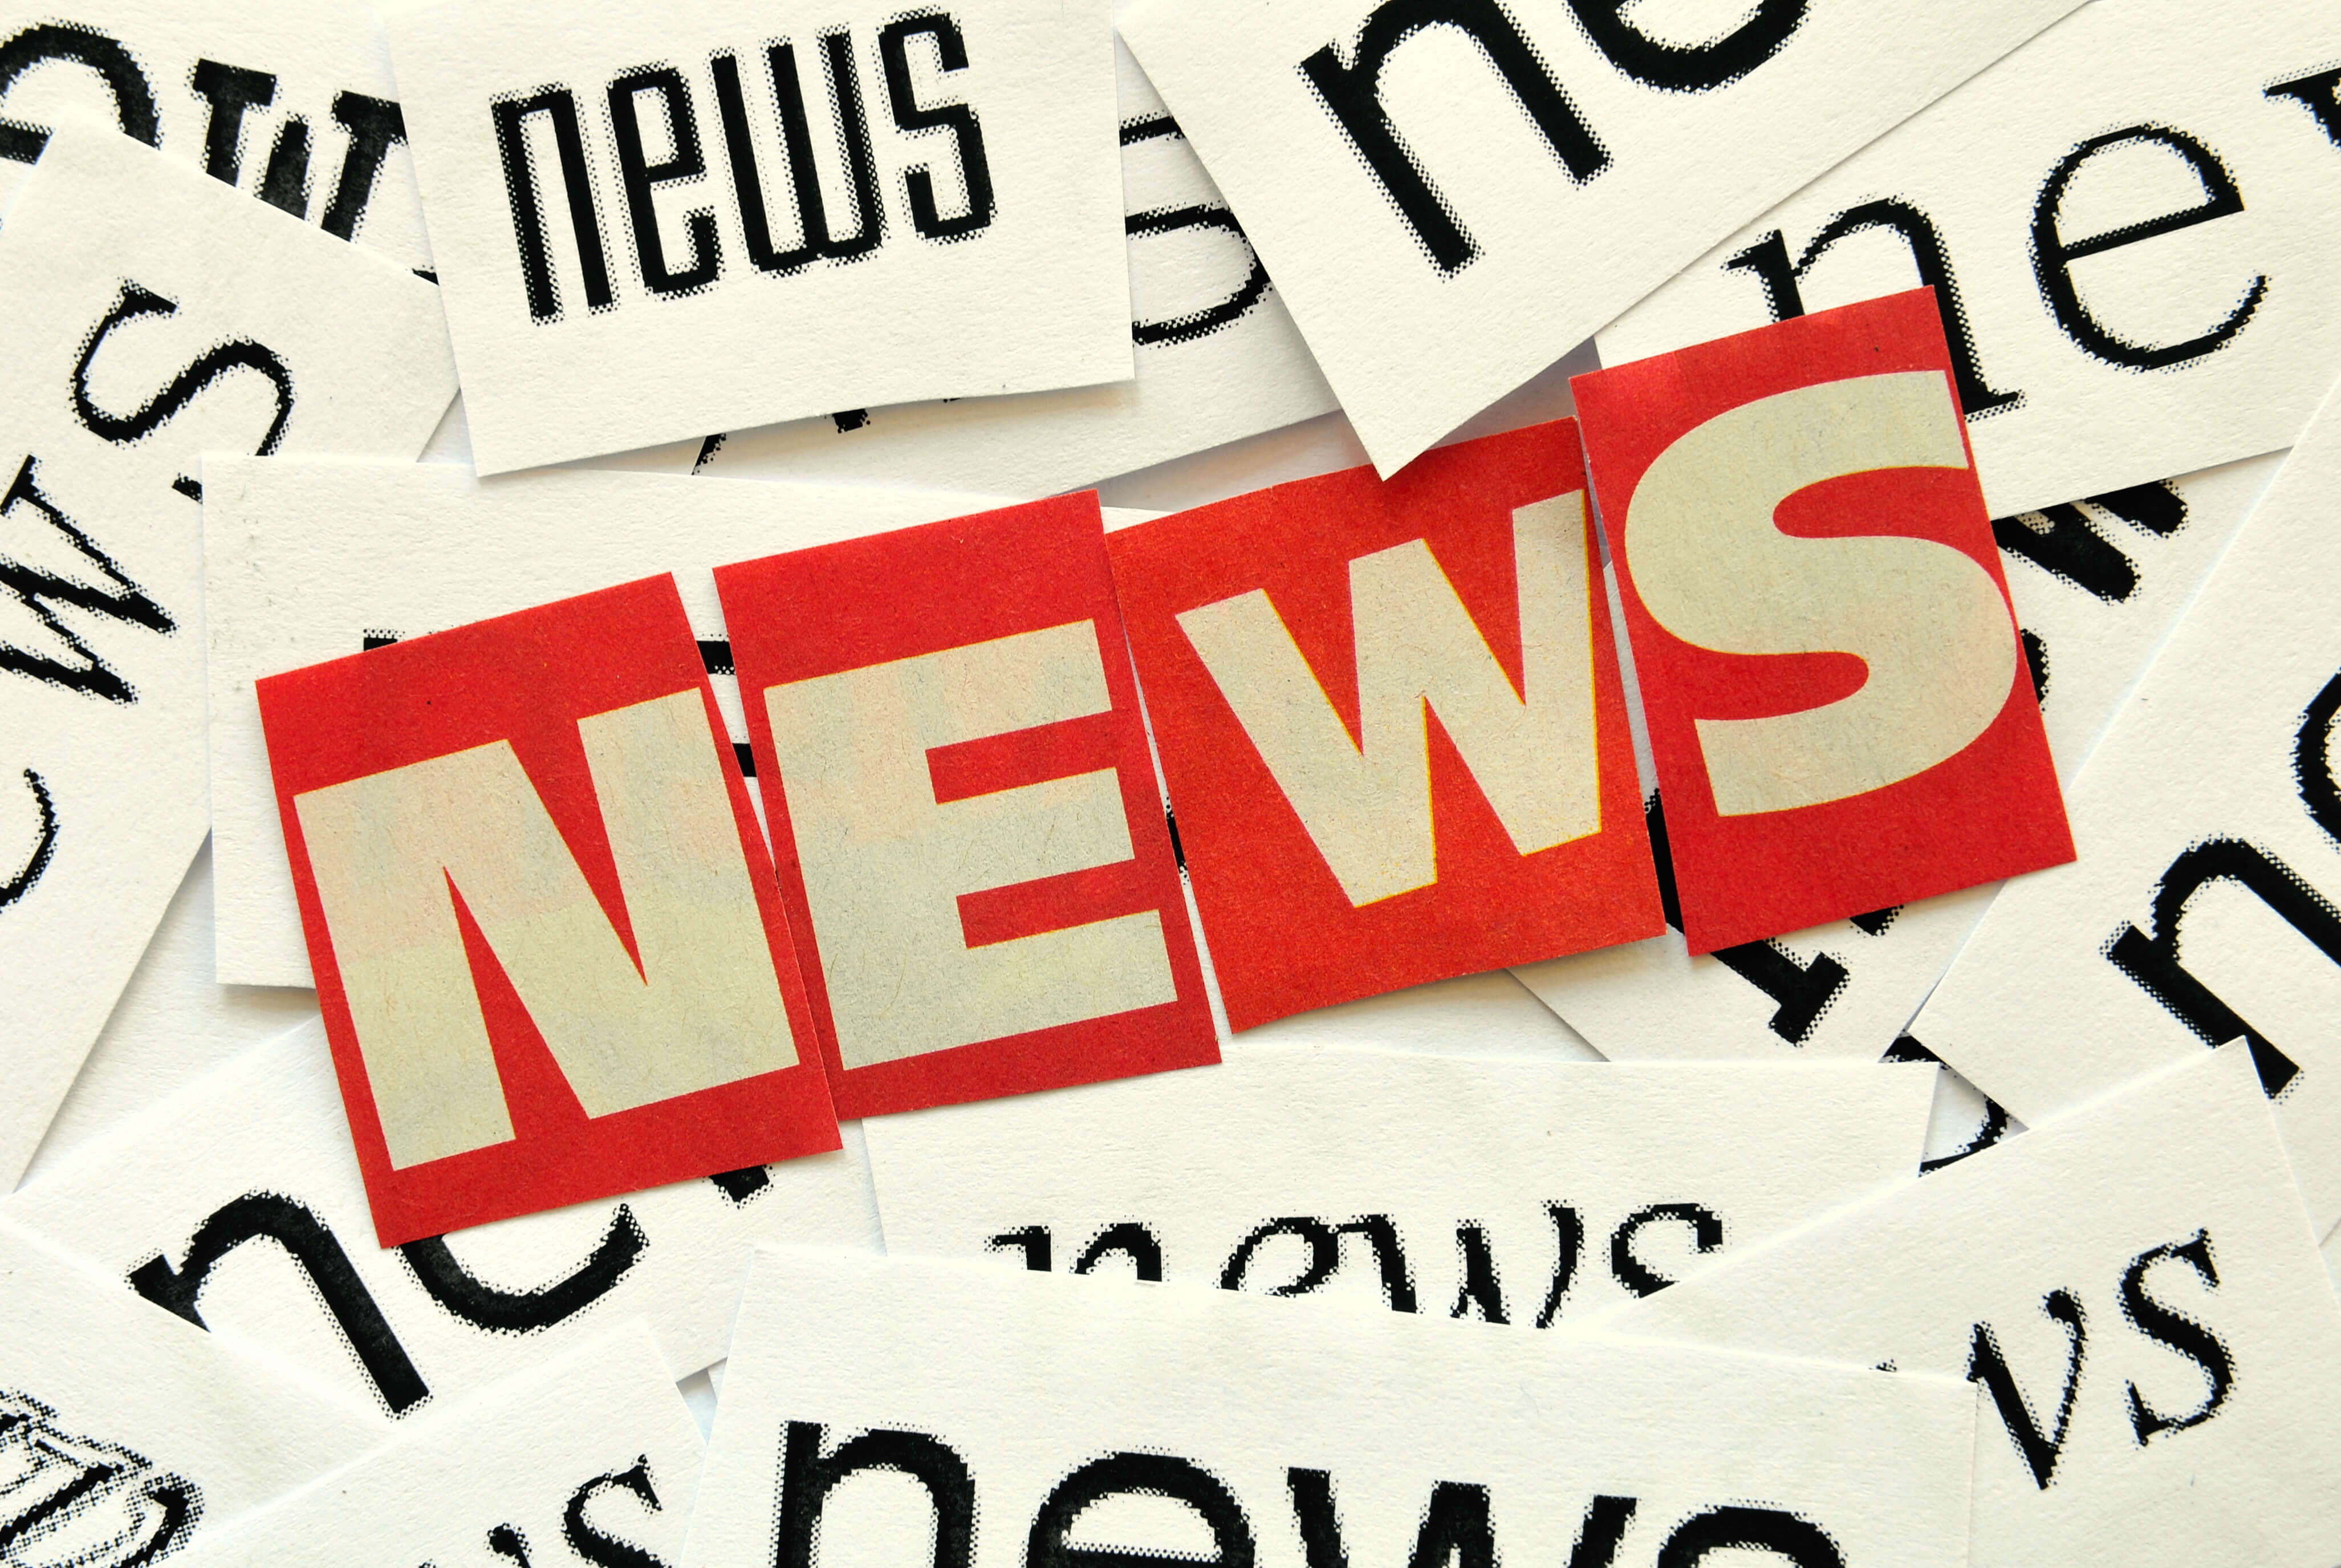 In the news: Lagos Pays N141bn to Bond Subscribers